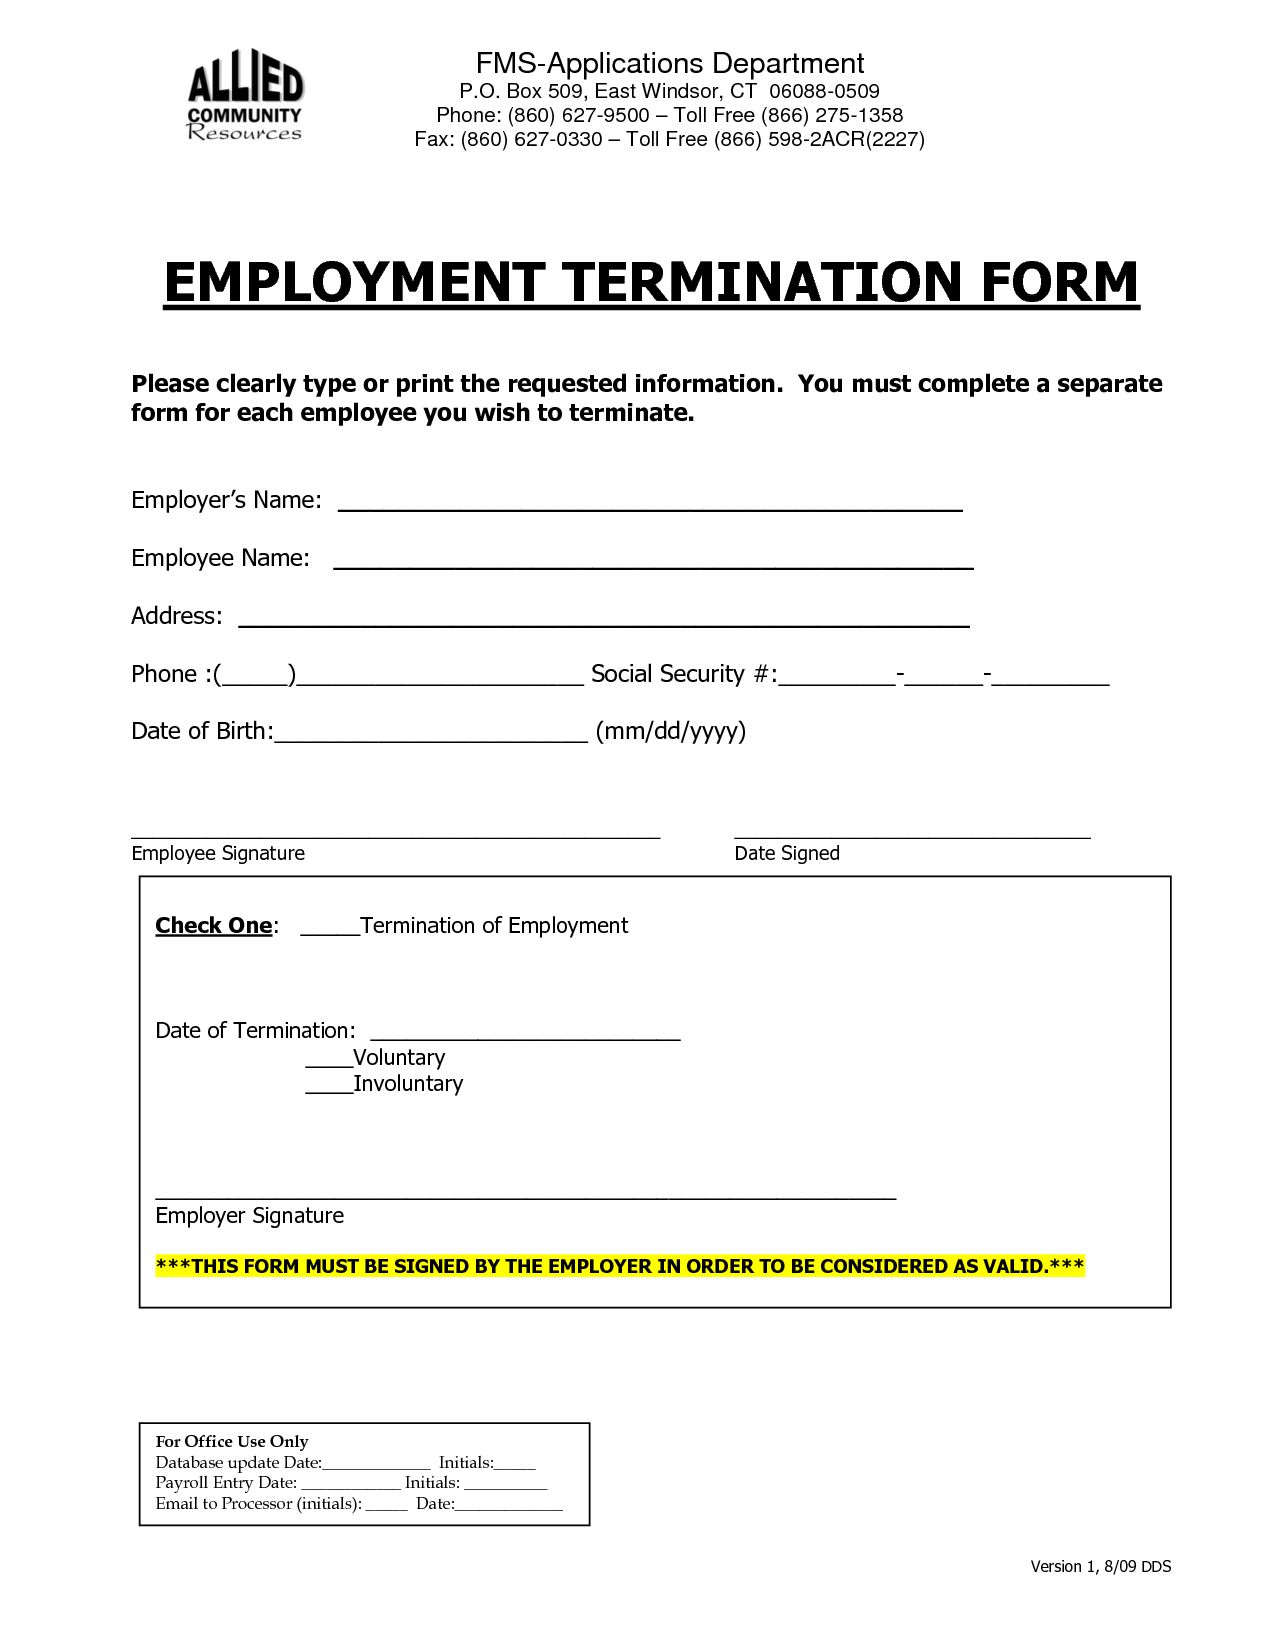 Employee Termination Form Template Free